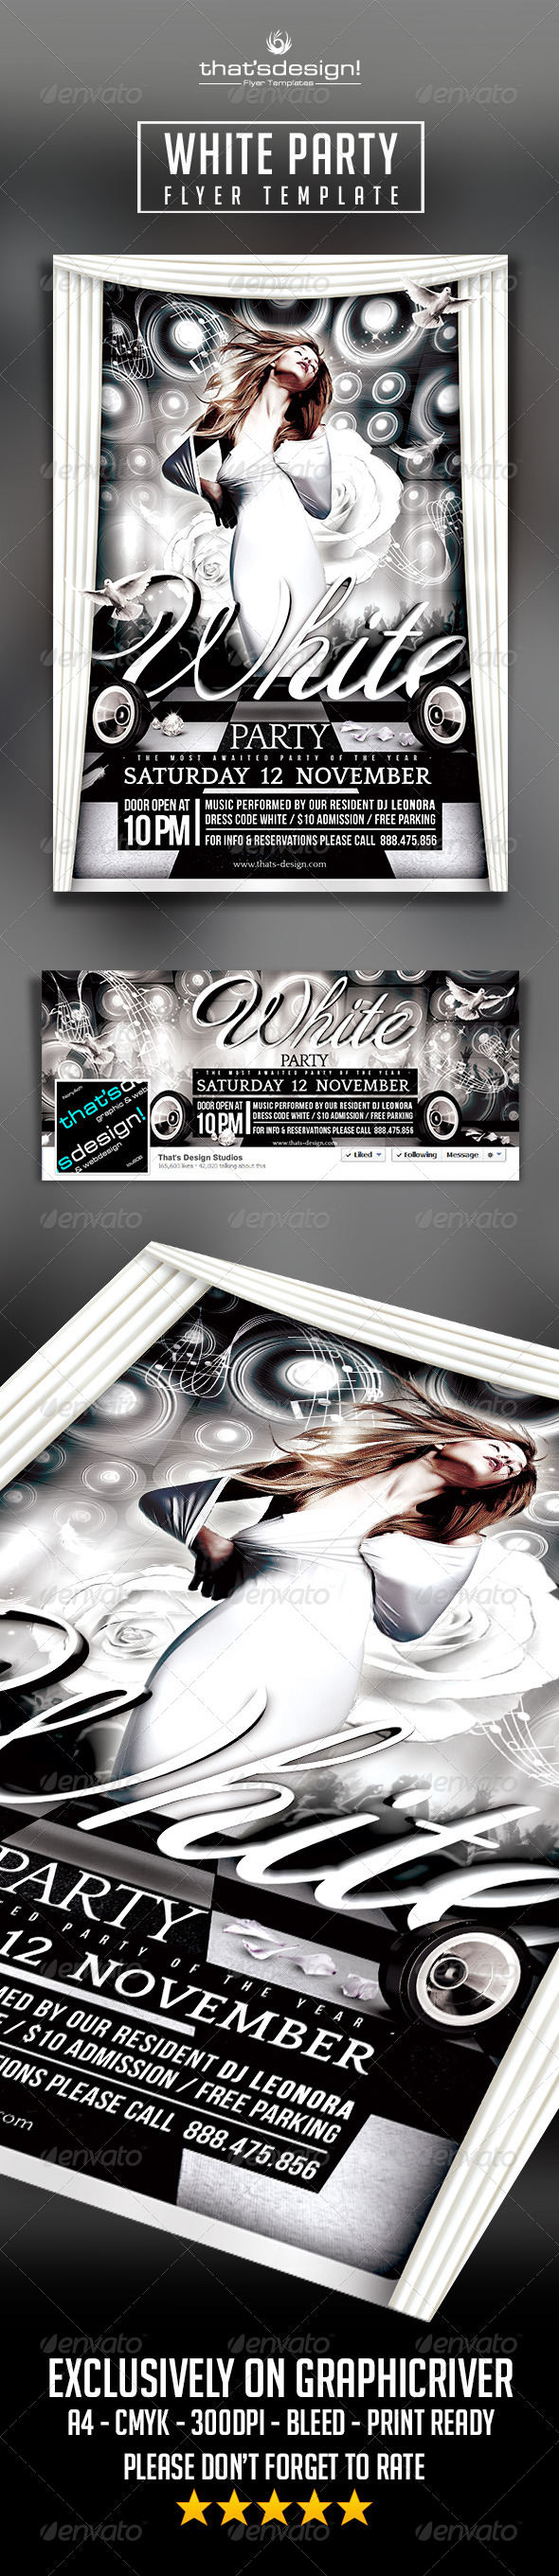 White Party Flyer Template & FB Timeline